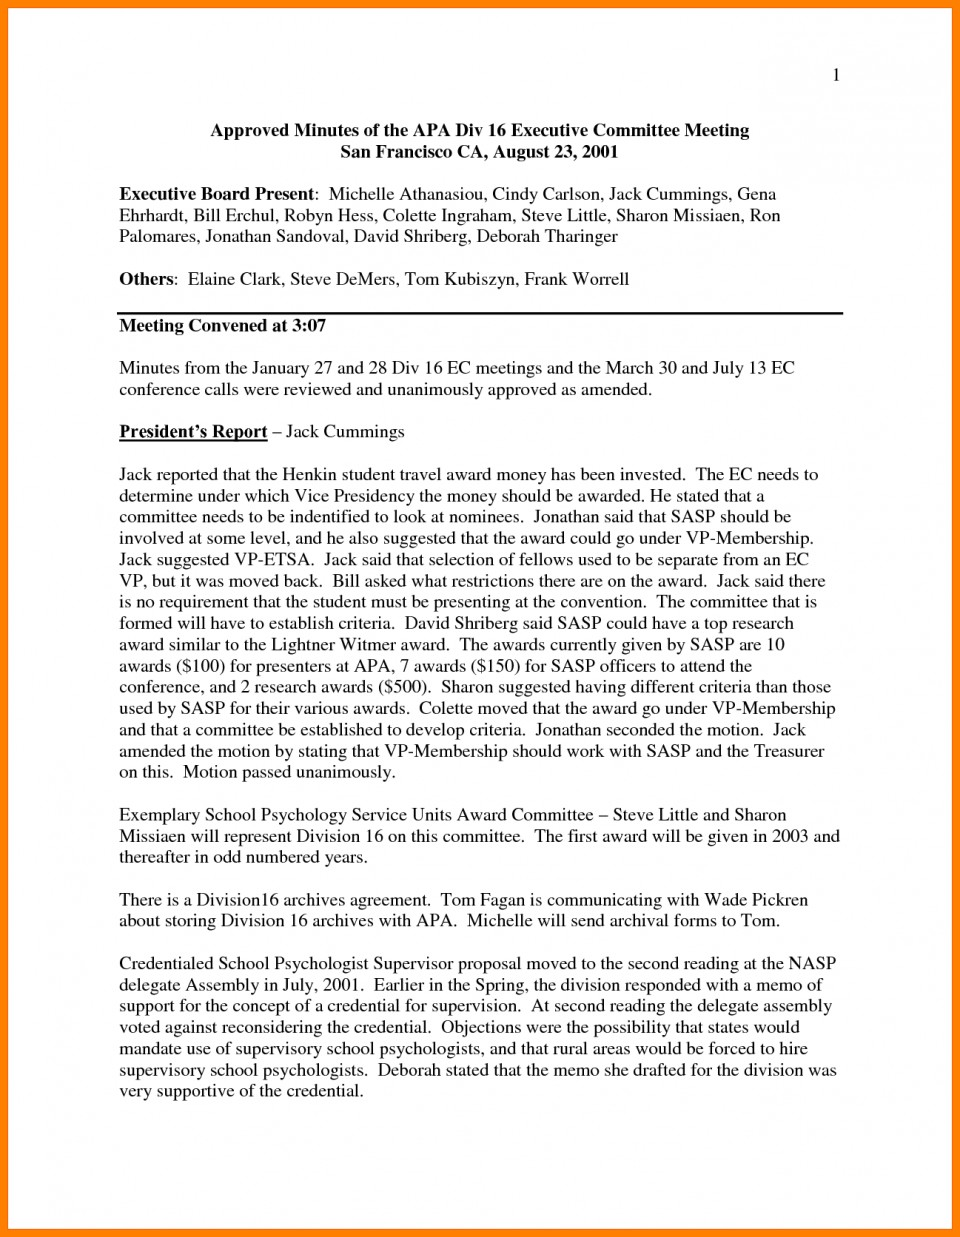 012 Research Paper Apa Style Format Memorandum Collection Of Solutions Memo Final Seee Owl Example Formatting With Guide Surprising Outline Template Reference Page 960